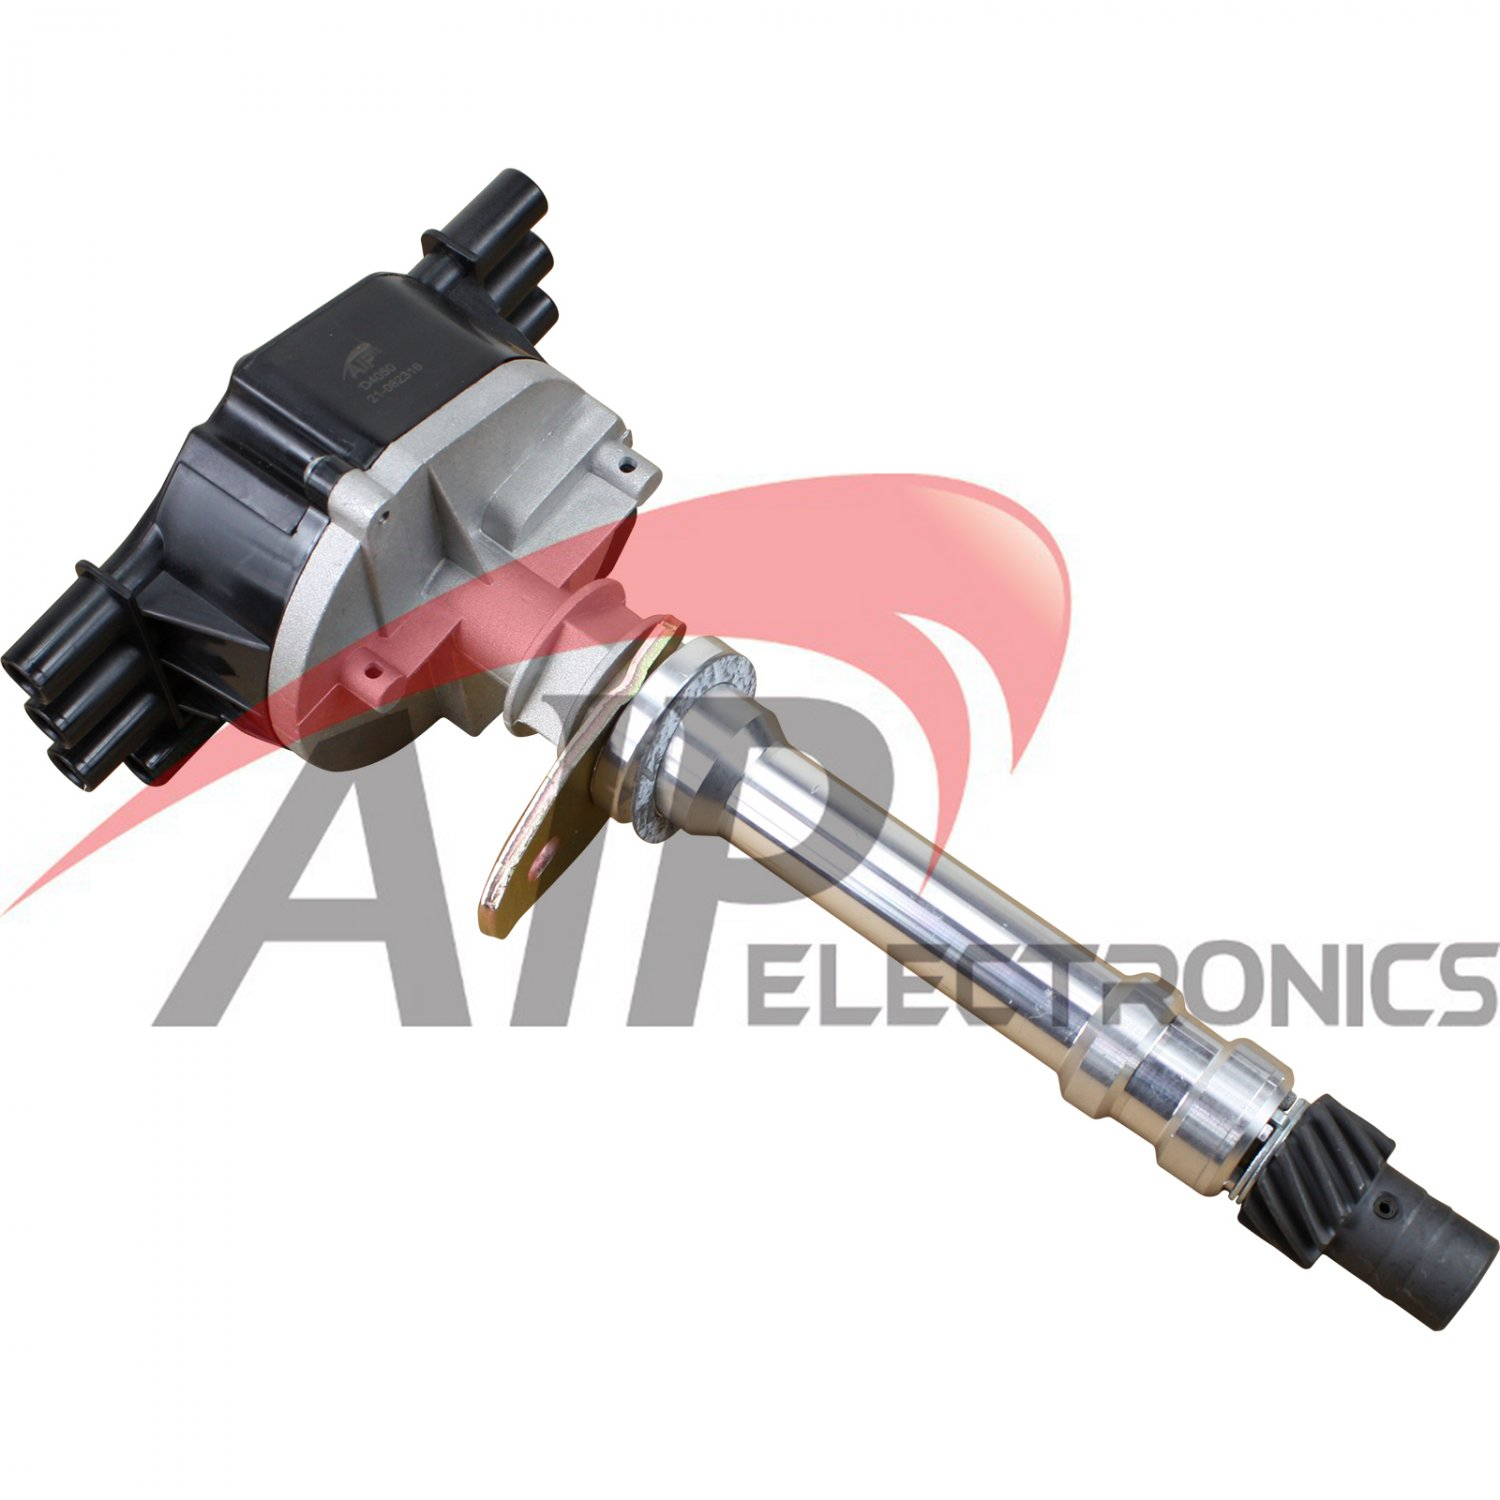 Brand New Ignition Distributor 1996-2005 Chevy GMC Pickup Truck 4.3L V6 Vortec Complete Oem Fit D405